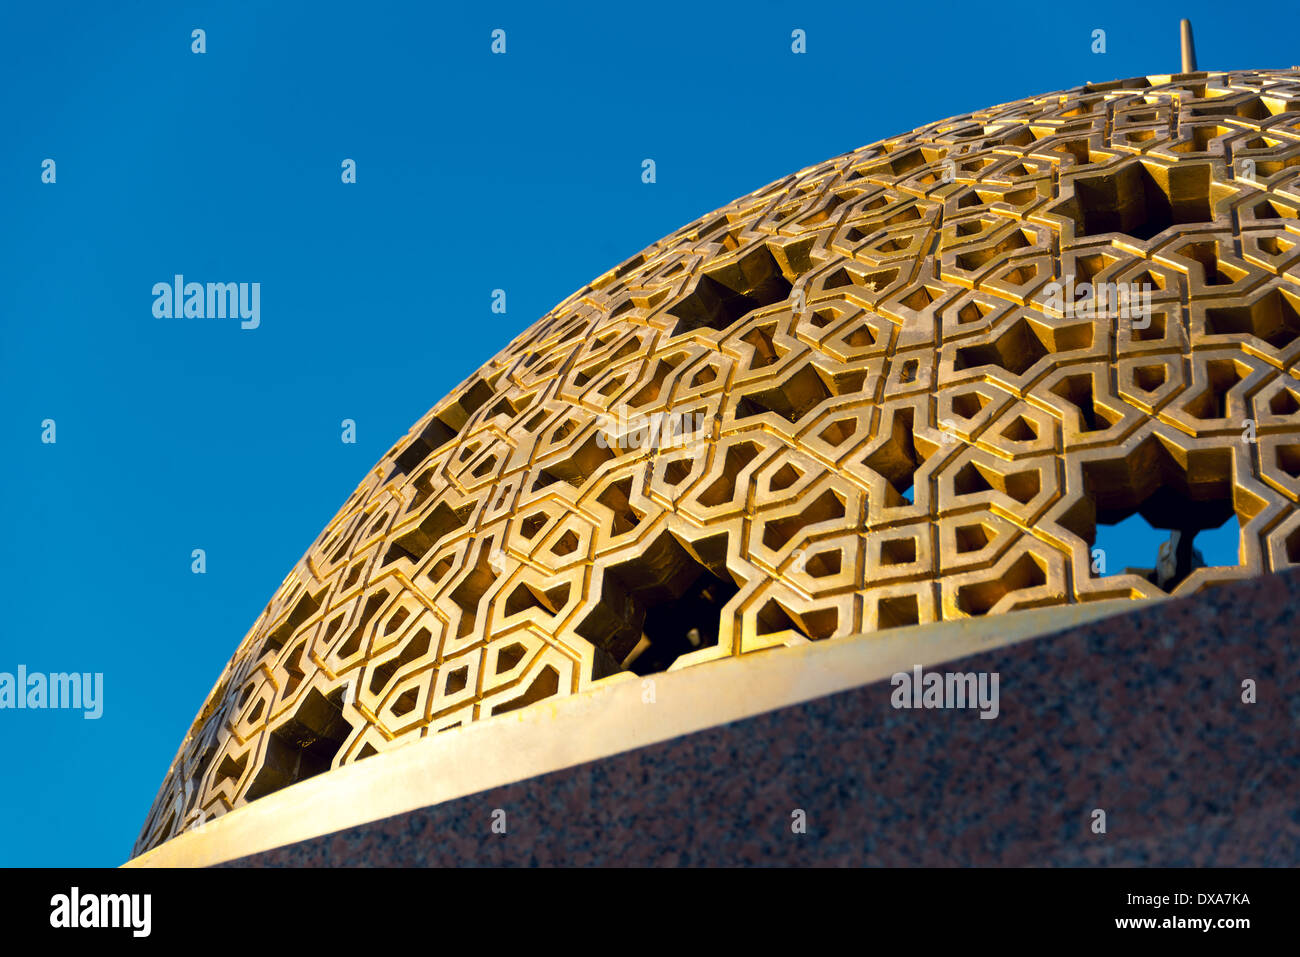 Detail of one of numerous domes on Muttrah Corniche promenade, in Muscat, Sultanate of Oman - Stock Image